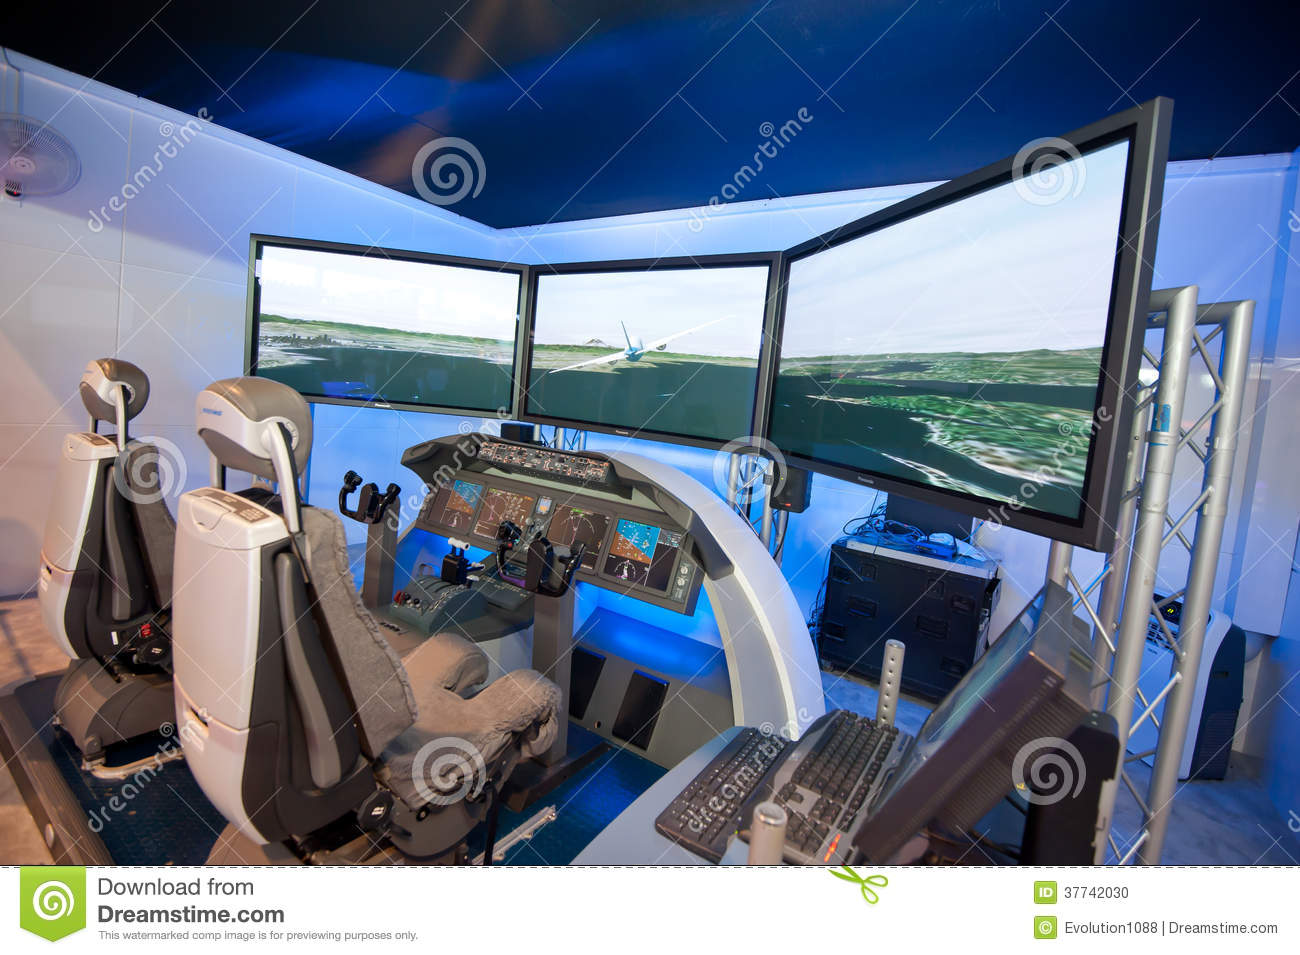 Boeing Flight Simulator At Singapore Airshow Editorial Stock Image.